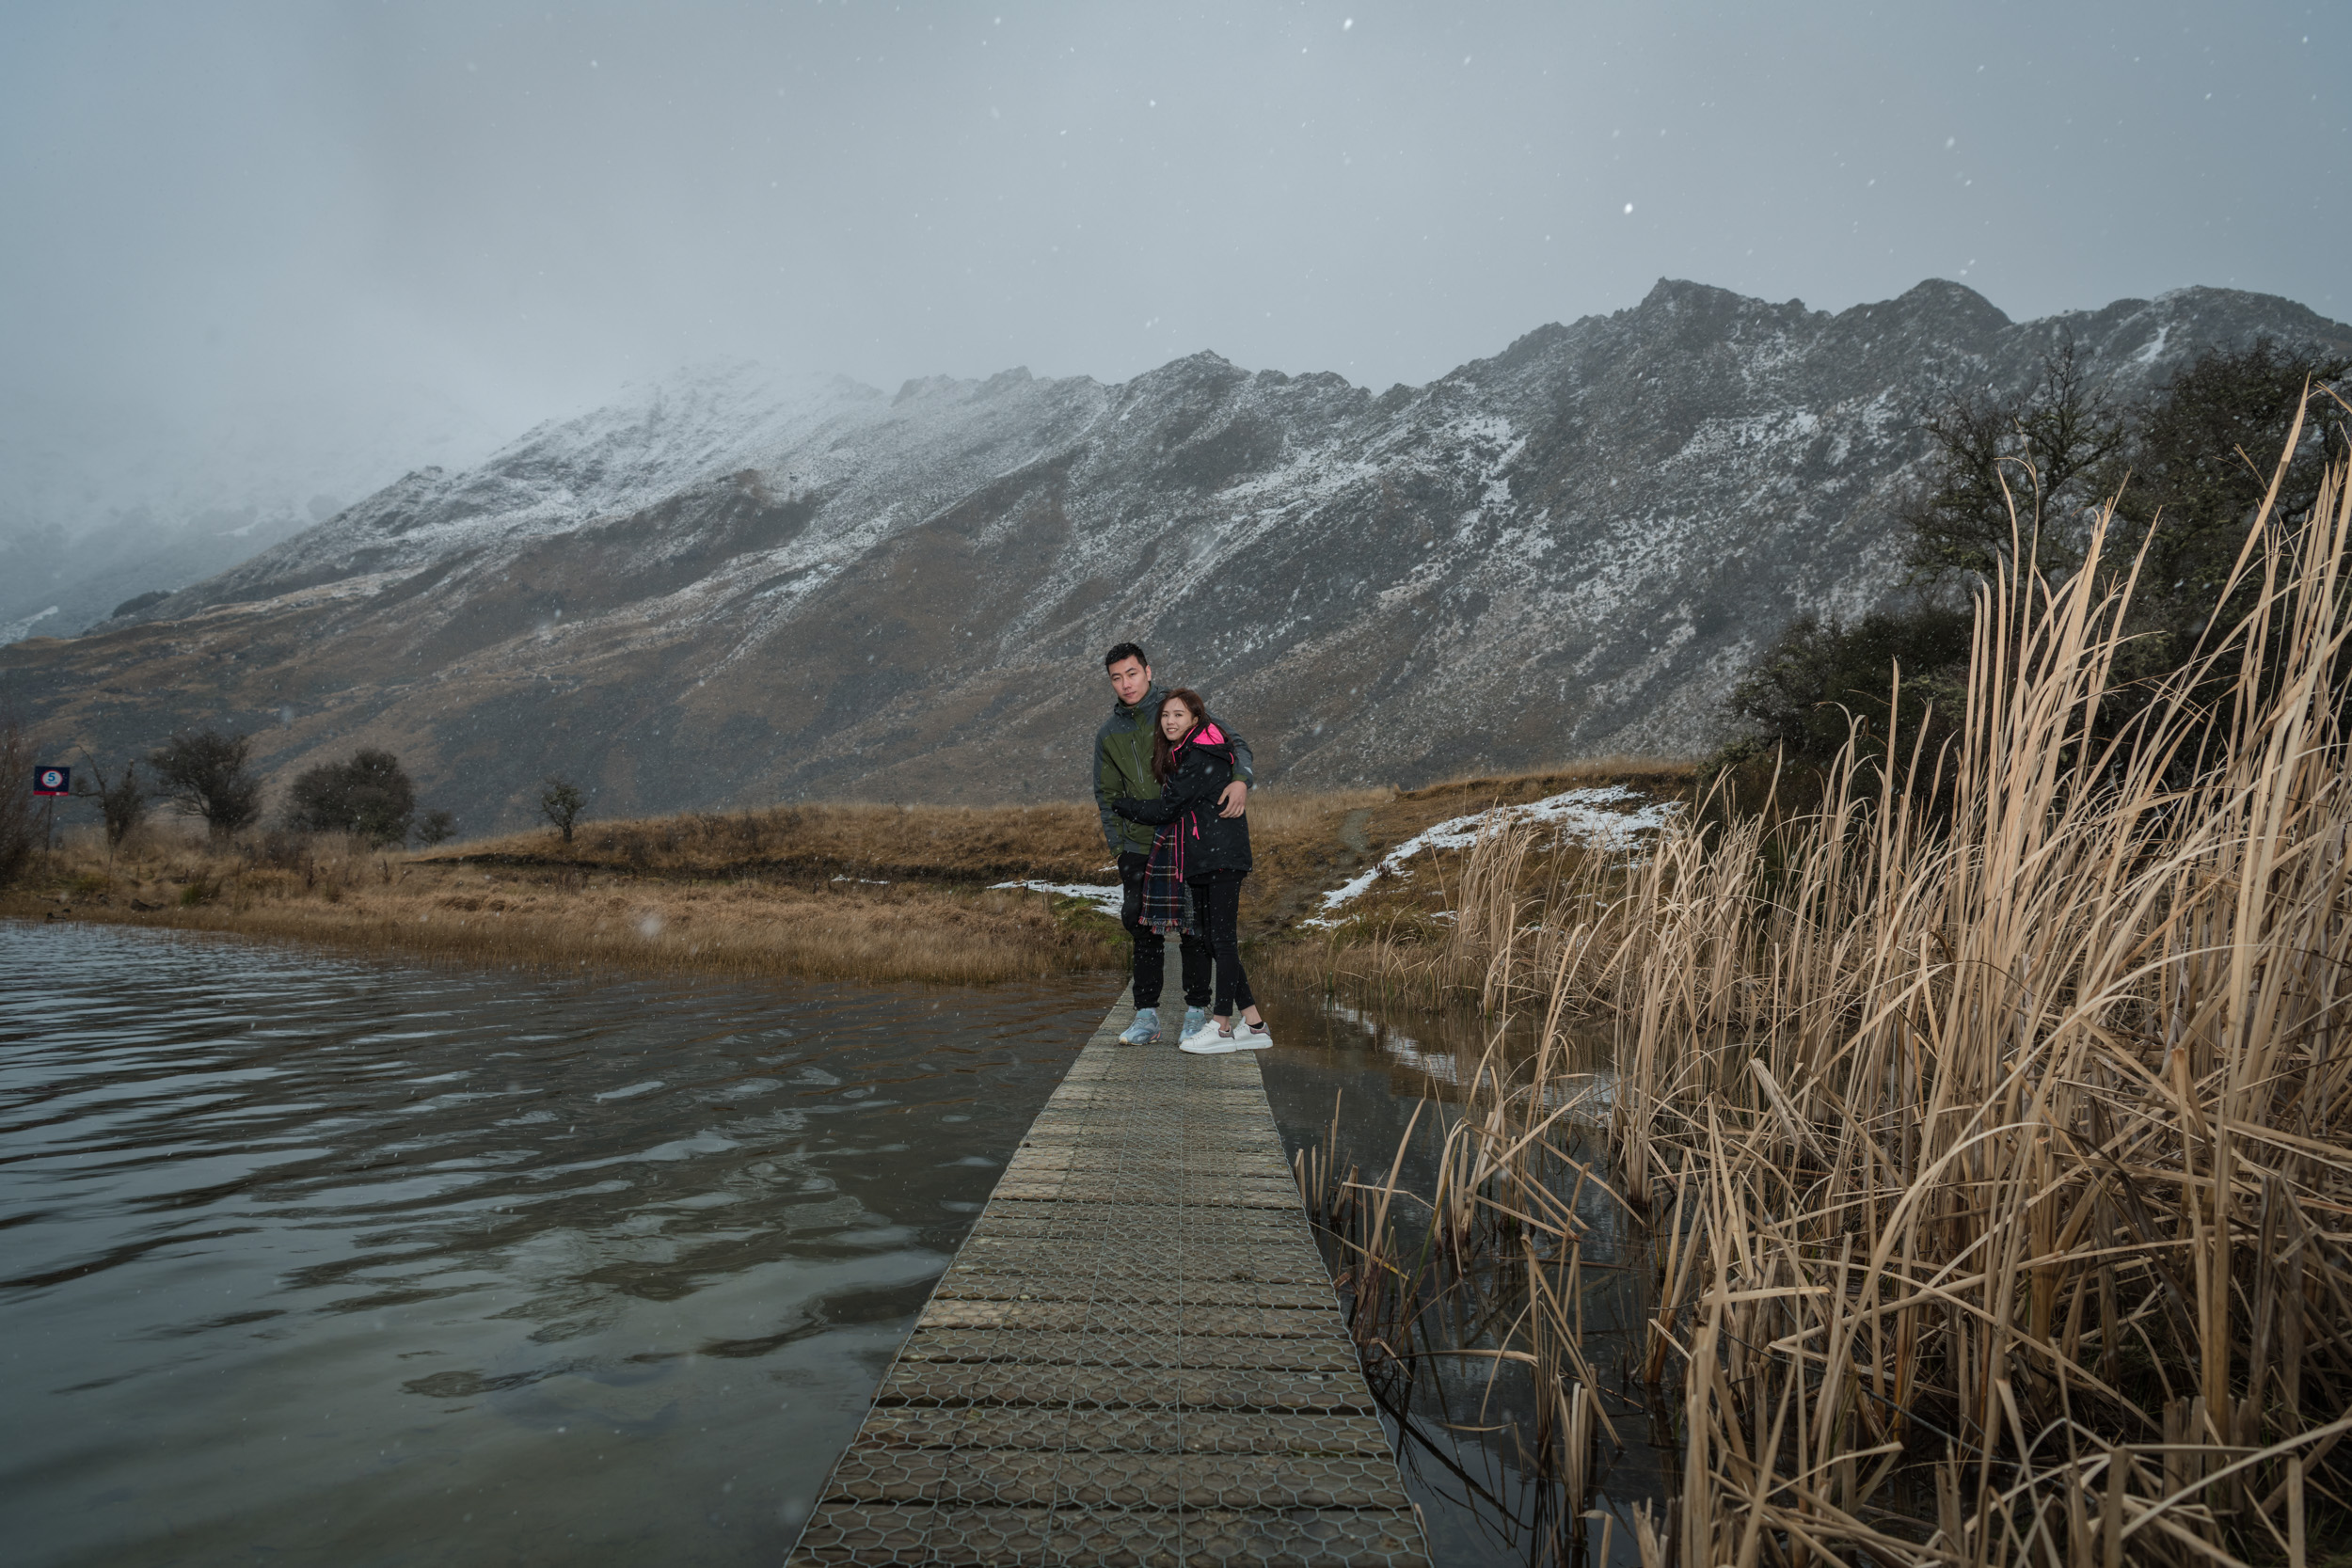 Snow falling at Moke Lake, Queenstown New Zealand - Private Charter 4WD Tours including Professional Travel Photography